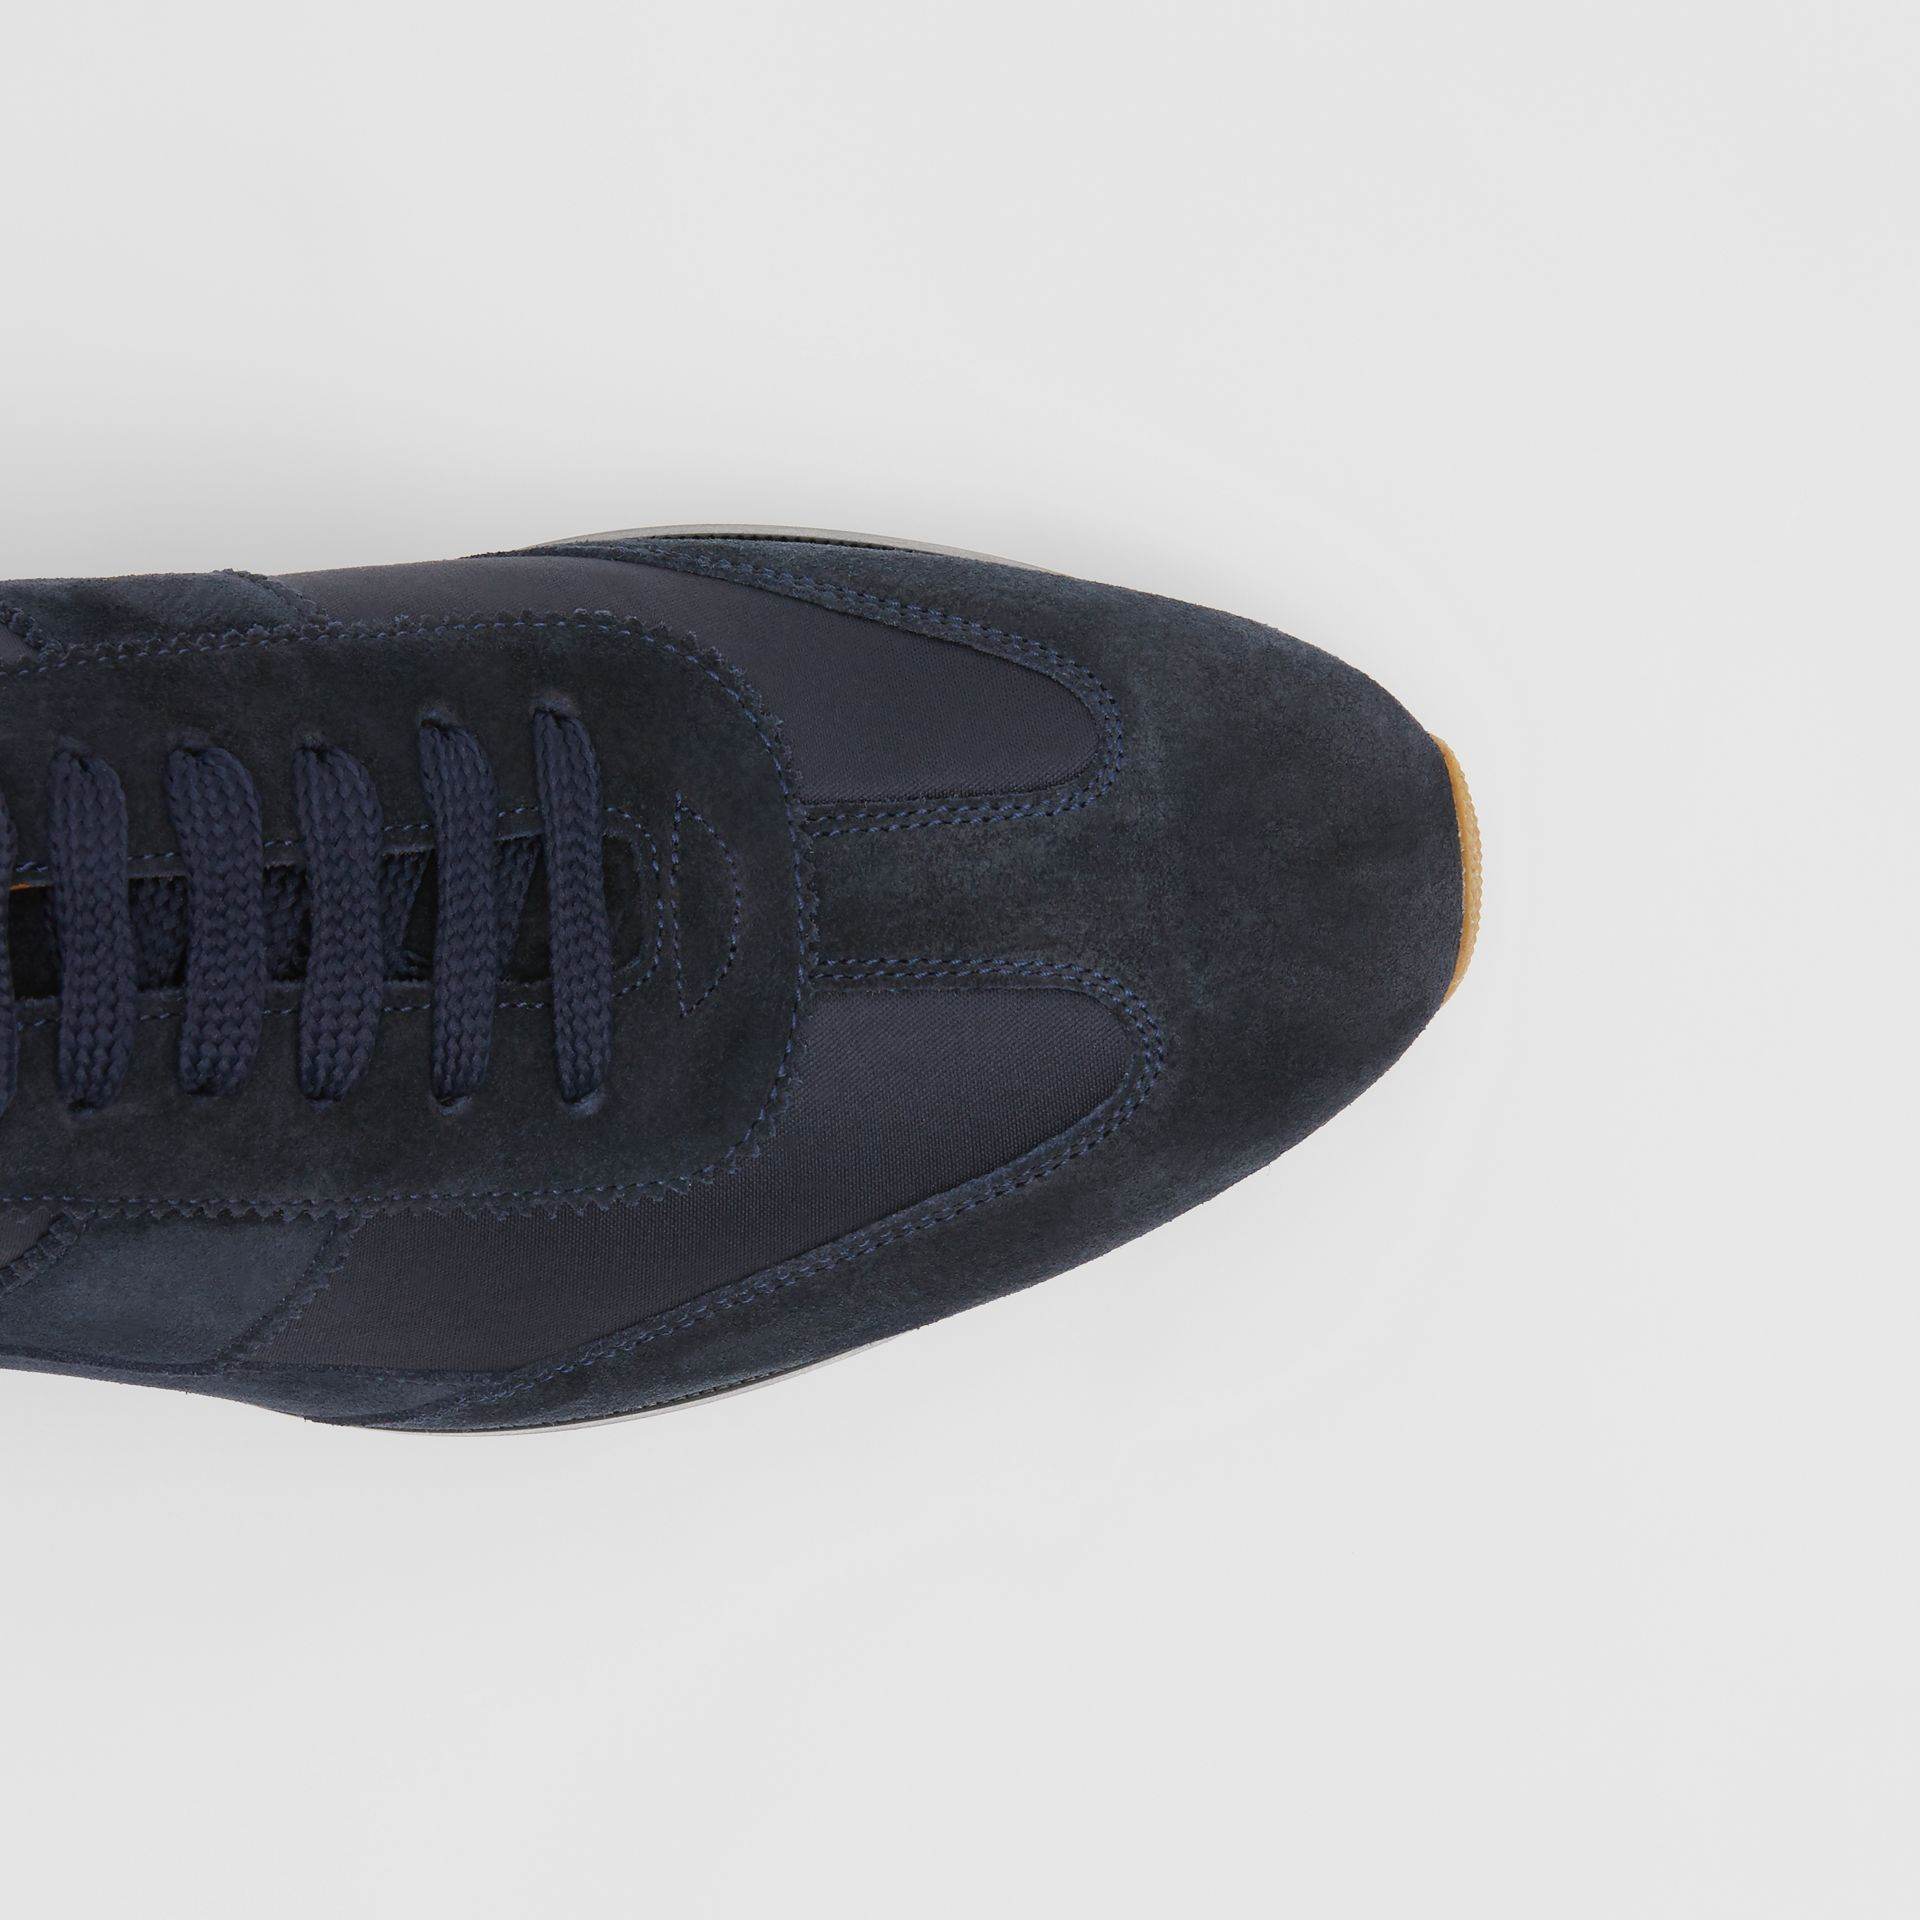 Neoprene Panel Suede Lace-up Shoes in Navy - Men | Burberry United Kingdom - gallery image 1